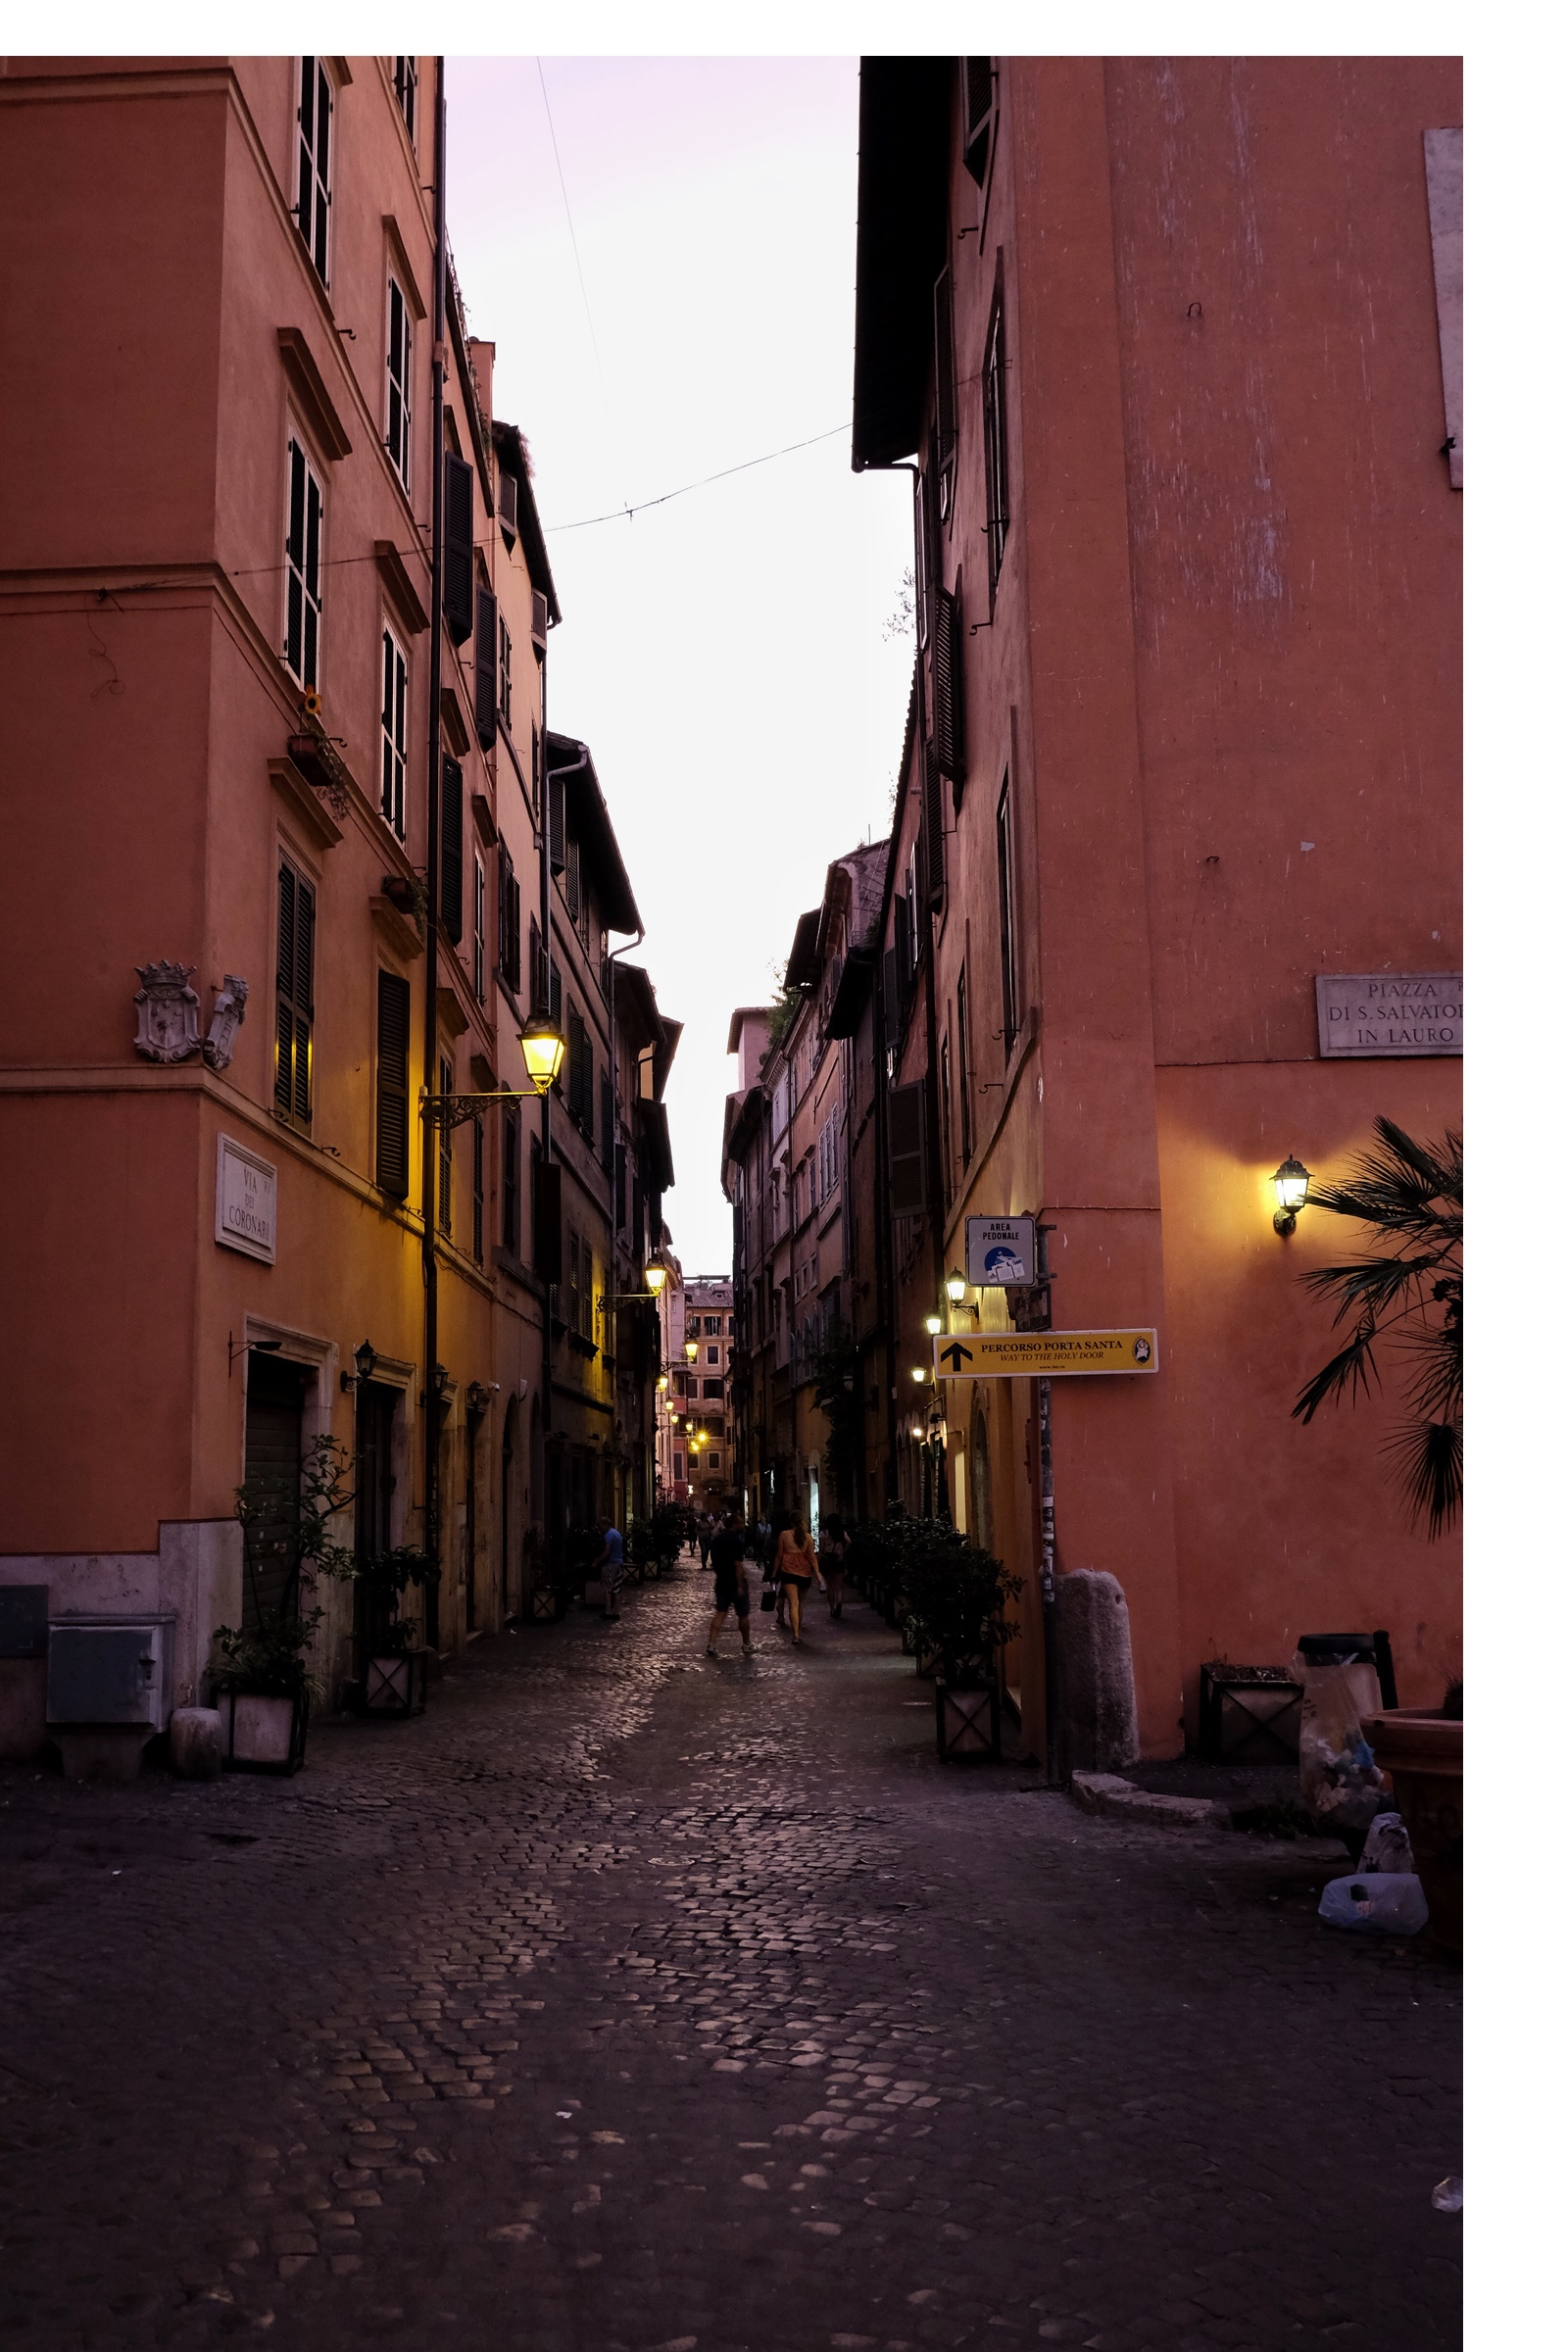 Strolling down the lantern lighted streets of Rome.